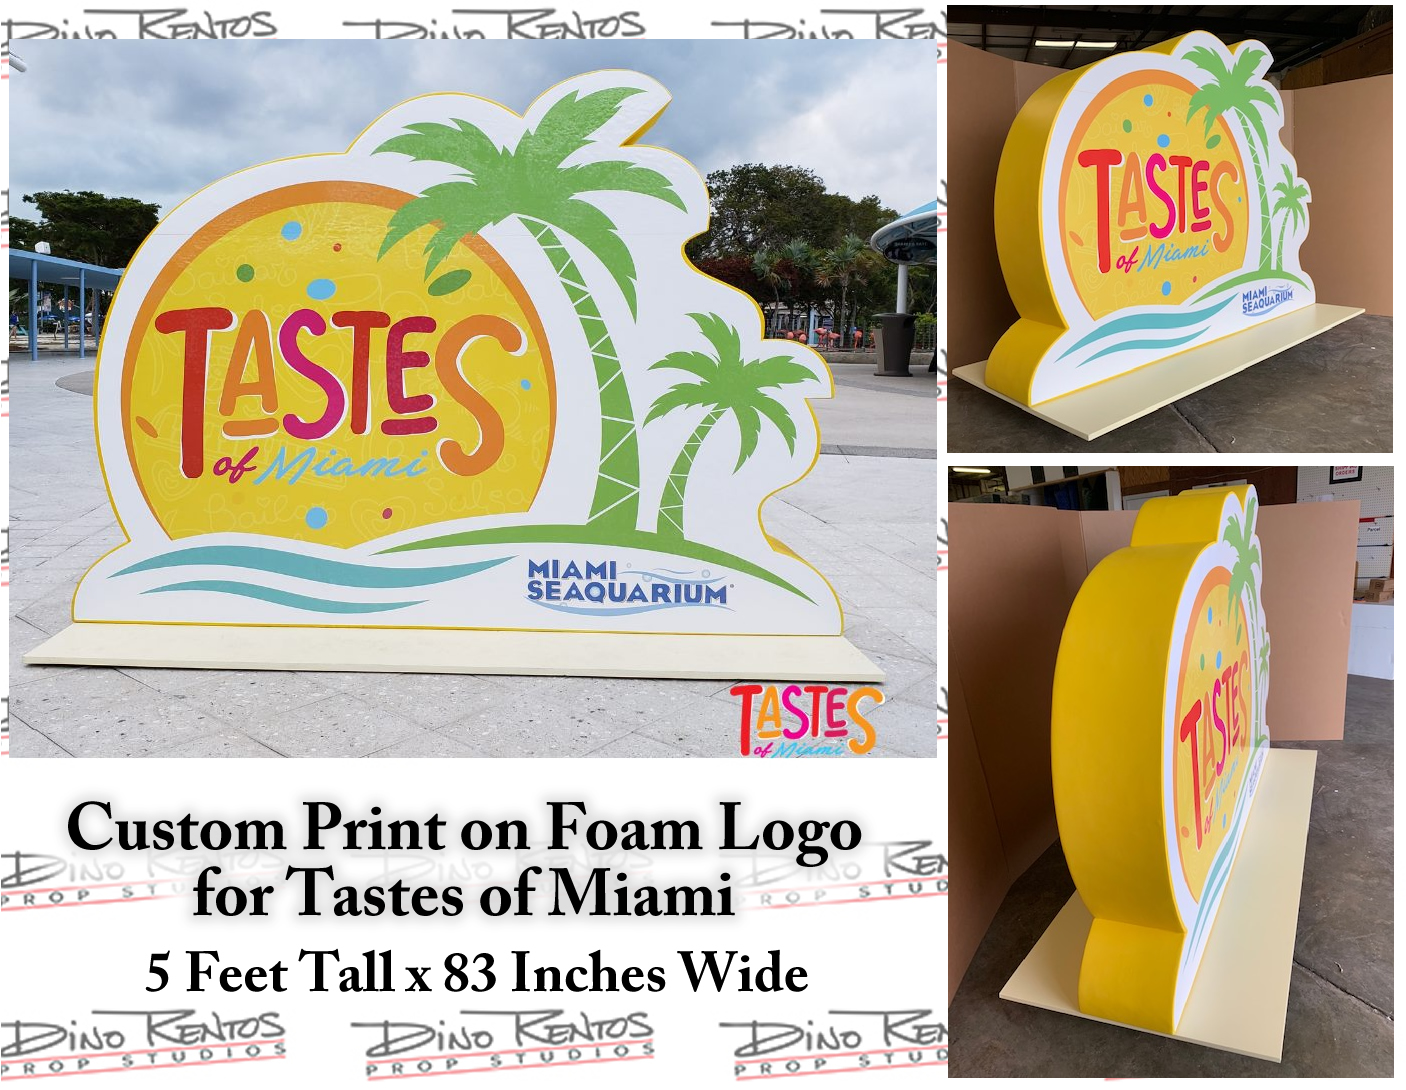 Print on Foam Logo for Tastes of Miami Event